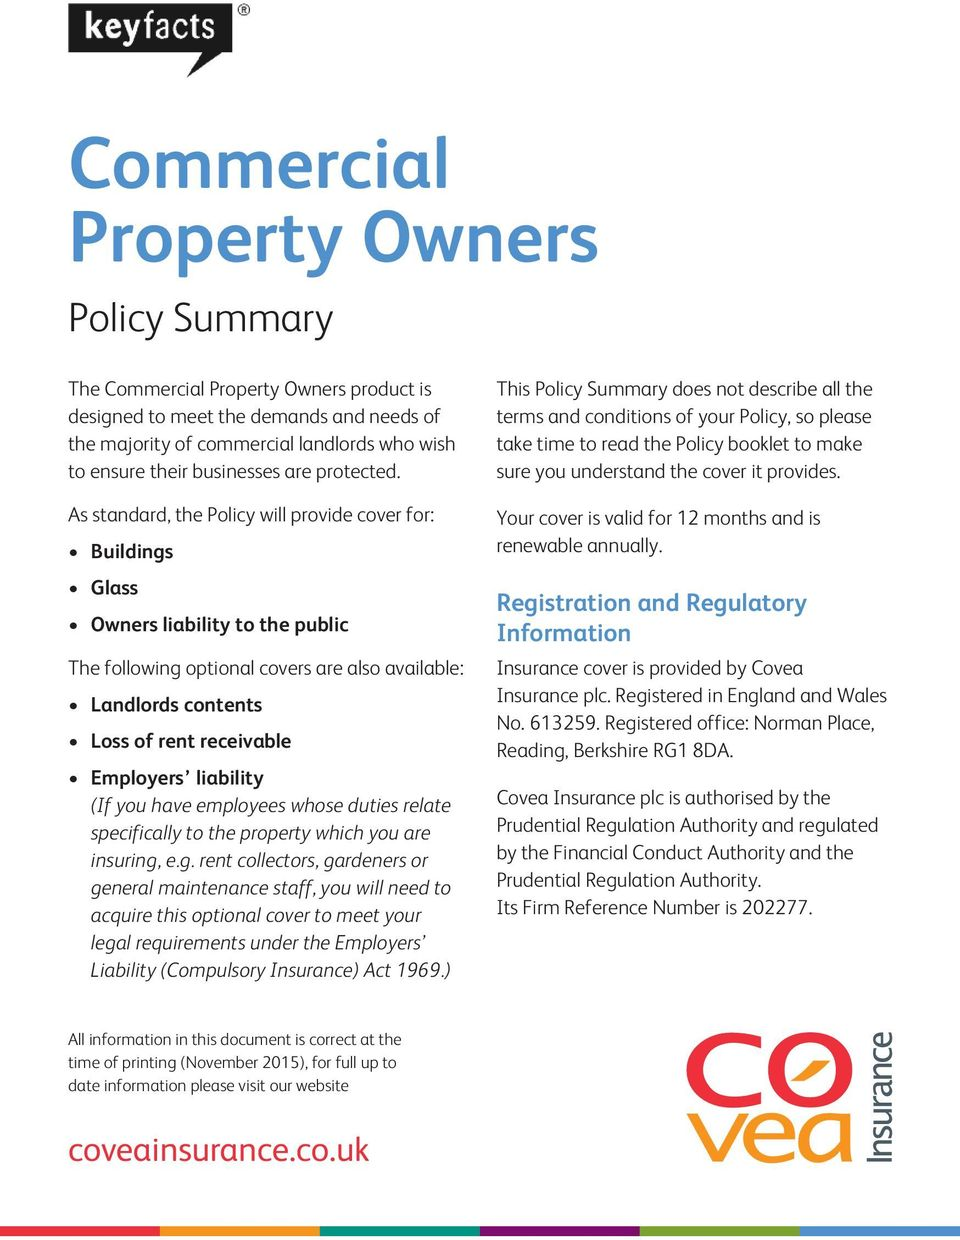 As standard, the Policy will provide cover for: Buildings Glass Owners liability to the public The following optional covers are also available: Landlords contents Loss of rent receivable Employers